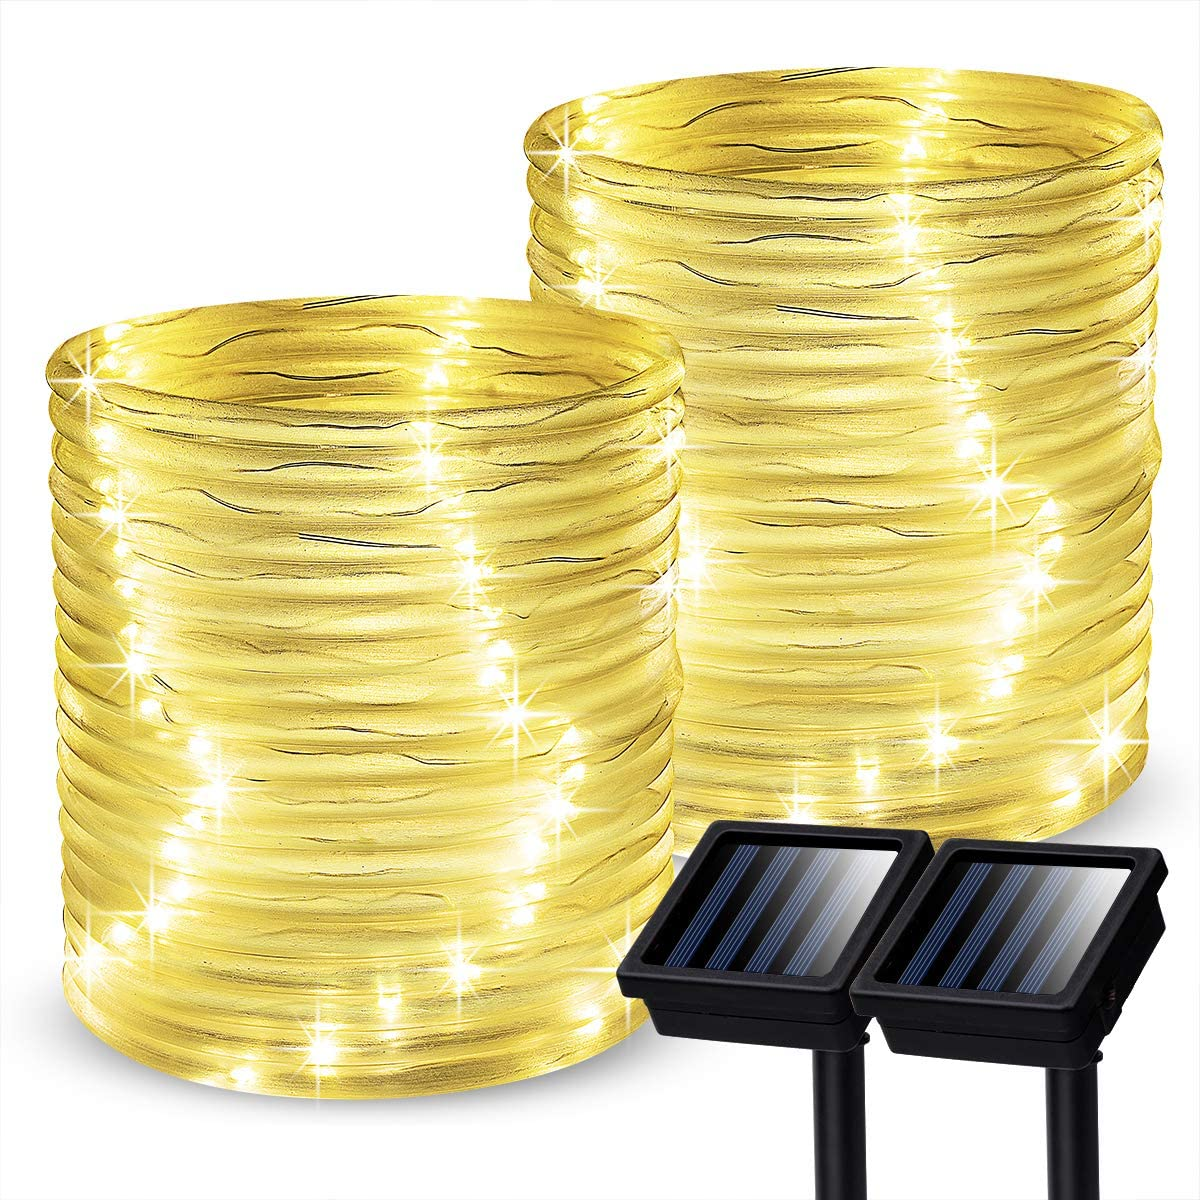 GIGALUMI Outdoor Solar Rope Lights, 2 Pack Solar Powered Outdoor Waterproof Tube Light with 100 LED, 35.7 feet 8 Modes Copper Wire Fairy Lights for Garden Fence Patio Yard(Warm White)